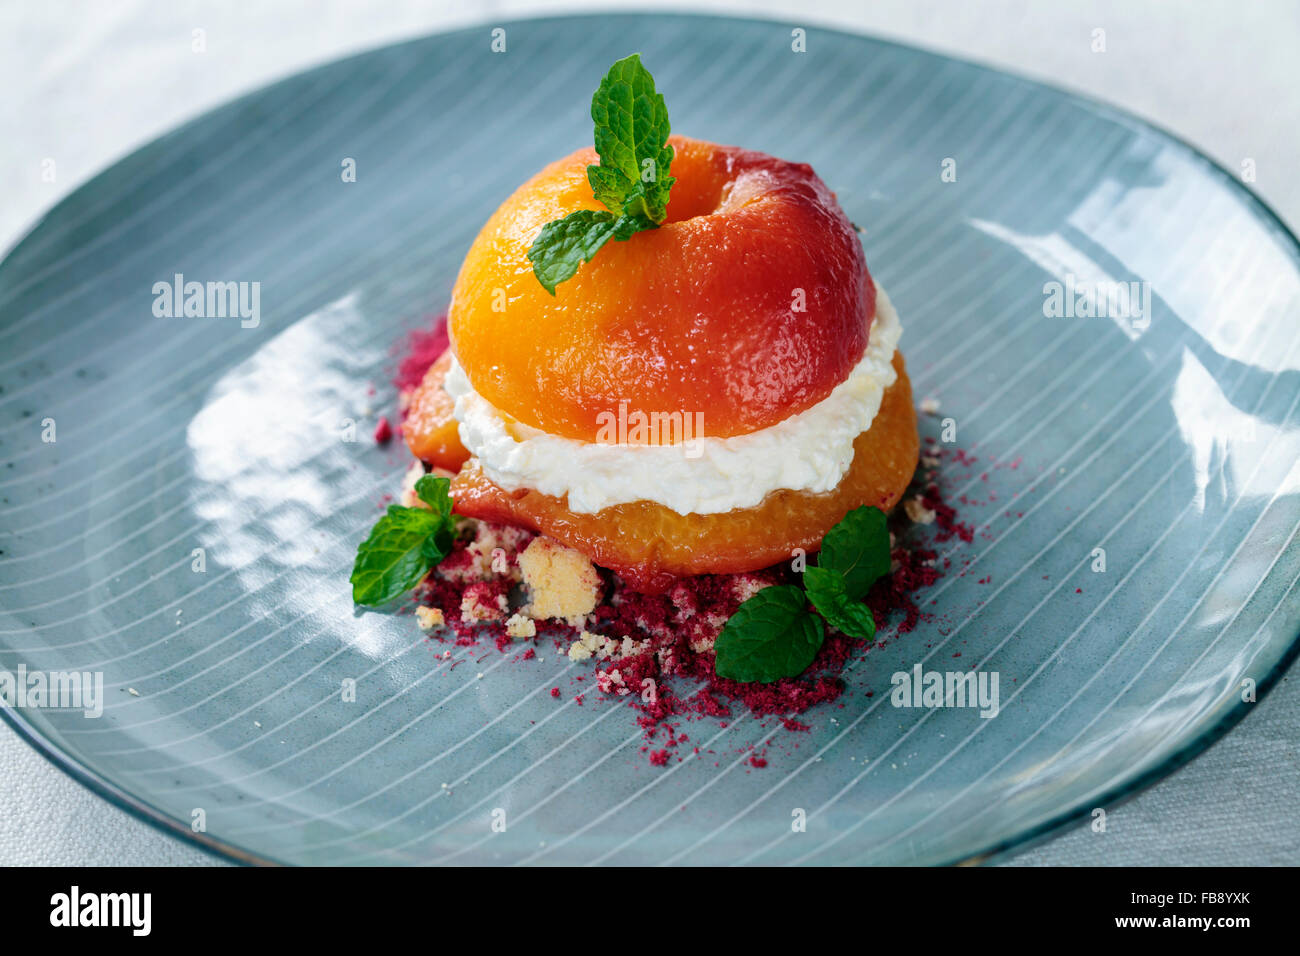 Roast peach with cream, crumbled biscuit and raspberry powder - Stock Image